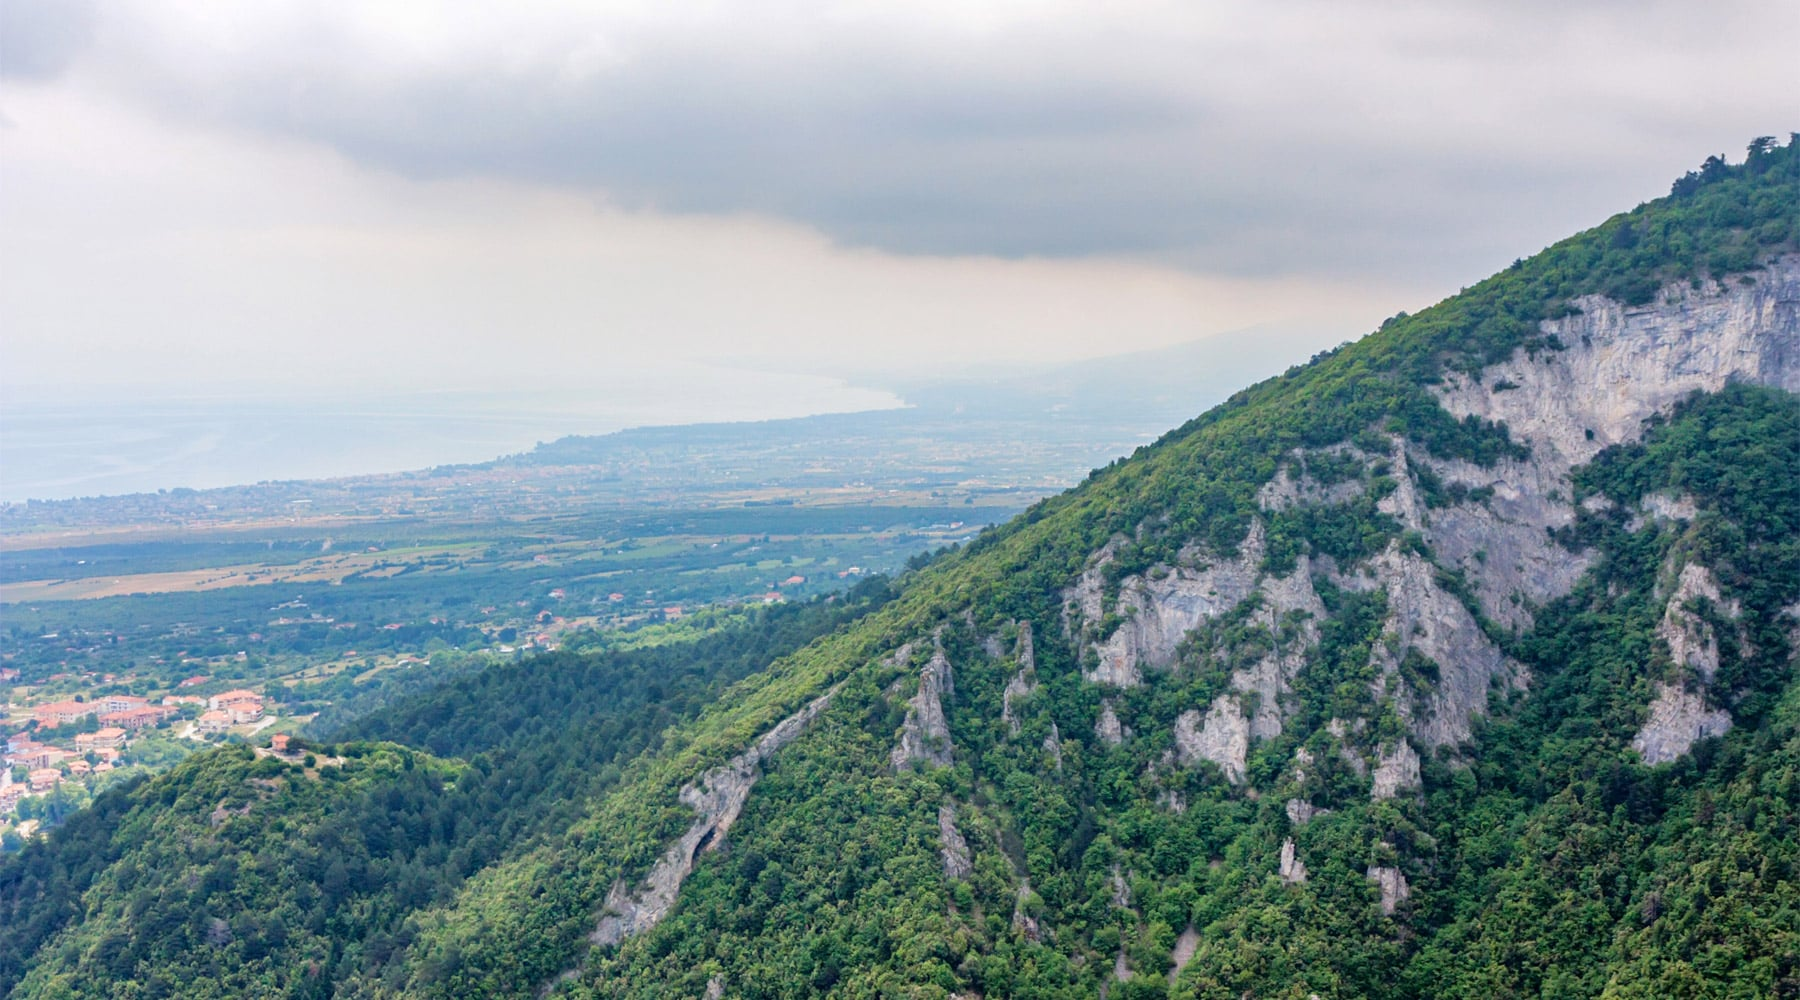 Mount Olympus – The Highest Mountain in Greece